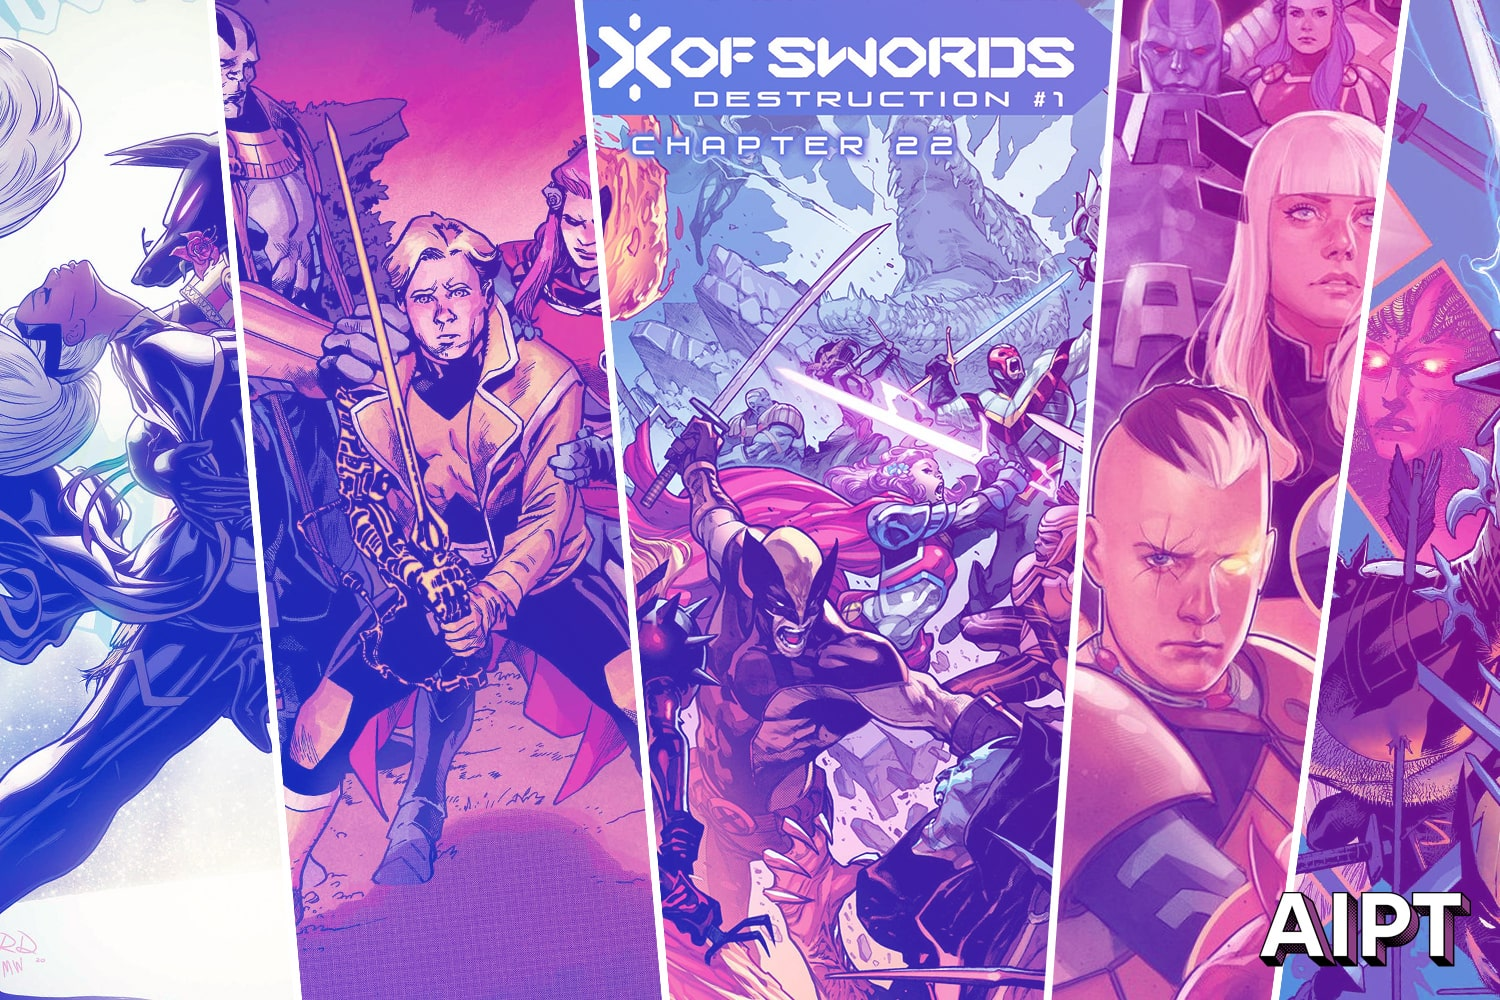 Marvel First Look: November 'X of Swords' cover art and solicitations revealed